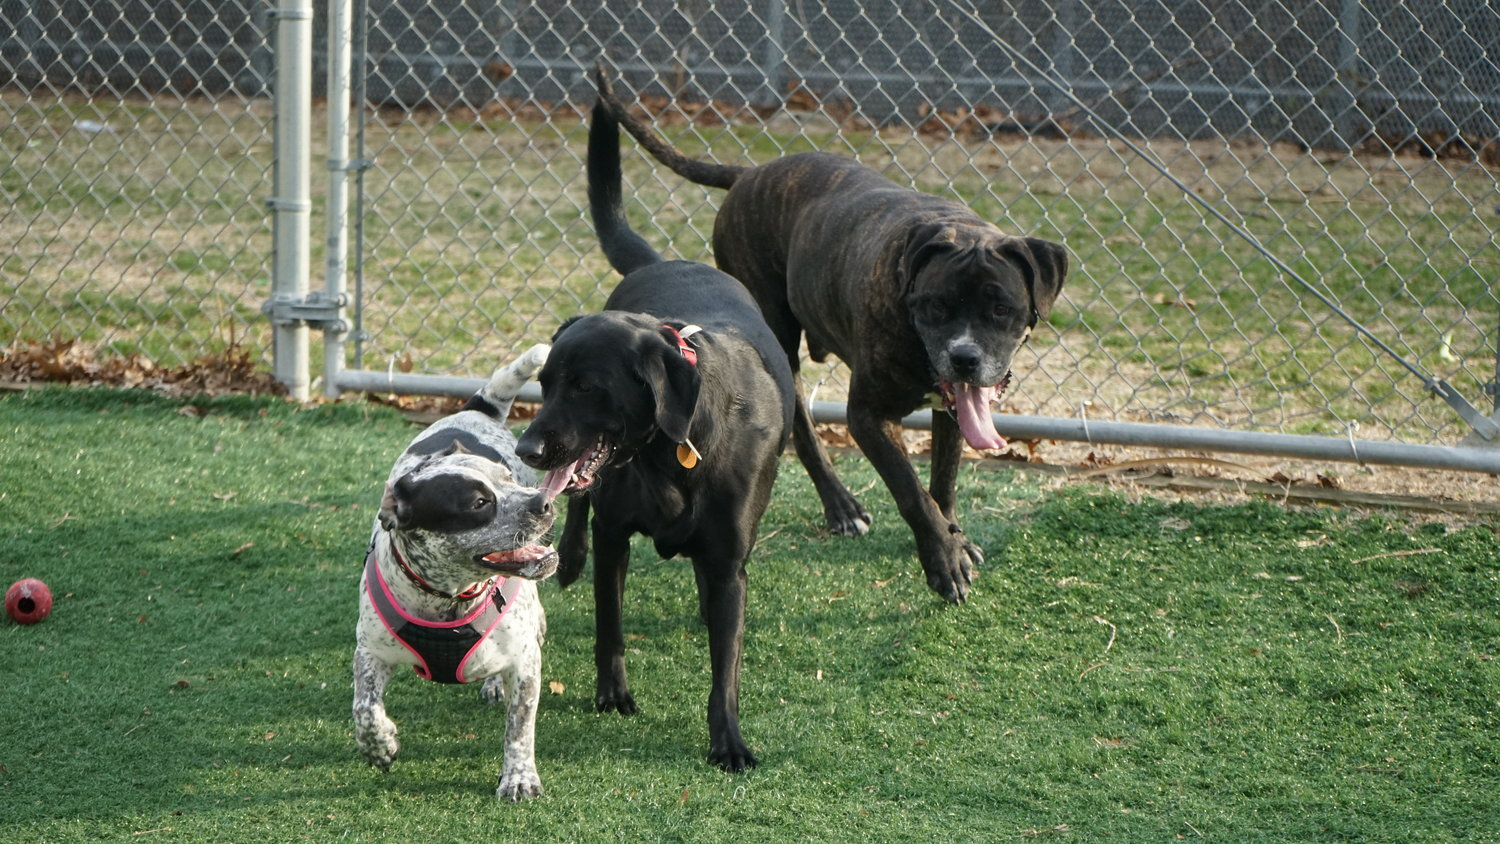 Margo, Bella and Blaze shared a playful moment.